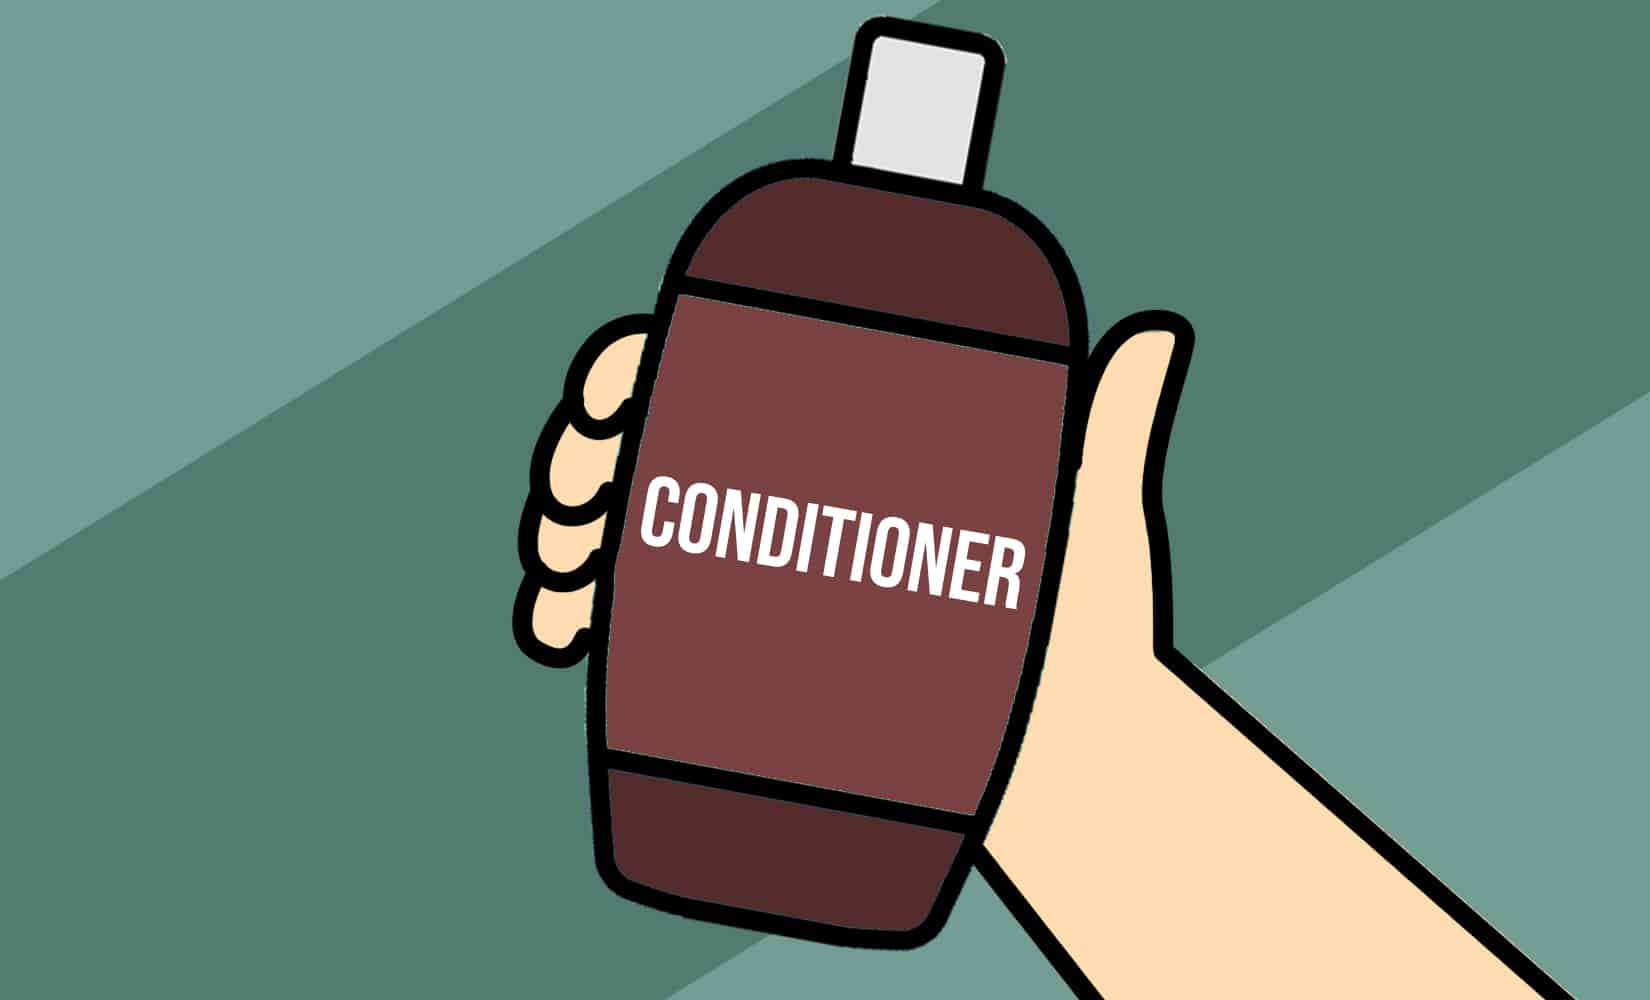 Conditioner to smell good